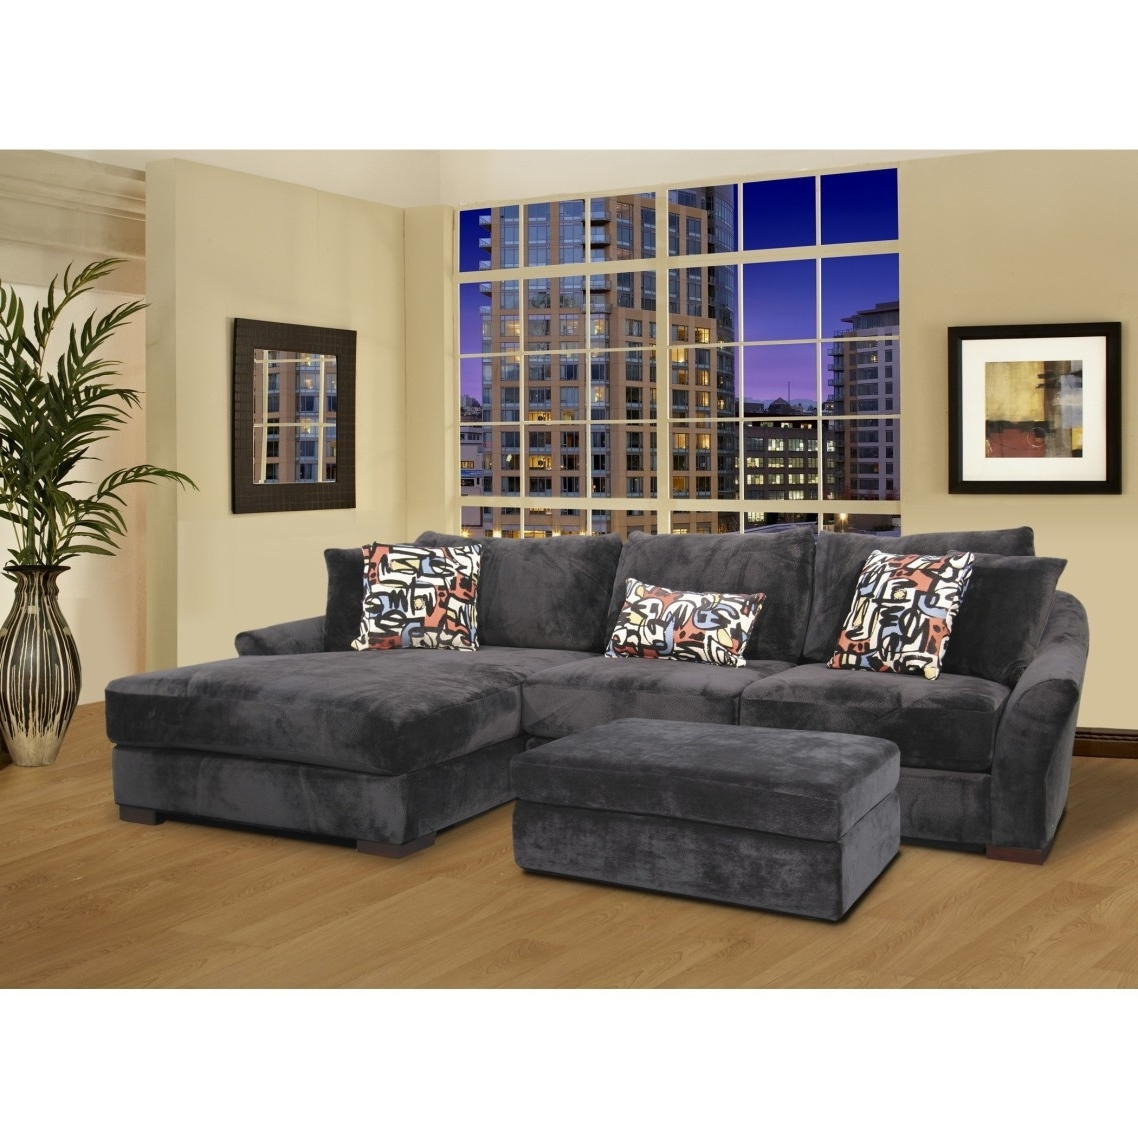 Well Liked Gray Velvet Oversized Sectional Sleeper Sofa With Left Chaise Pertaining To Ventura County Sectional Sofas (View 19 of 20)